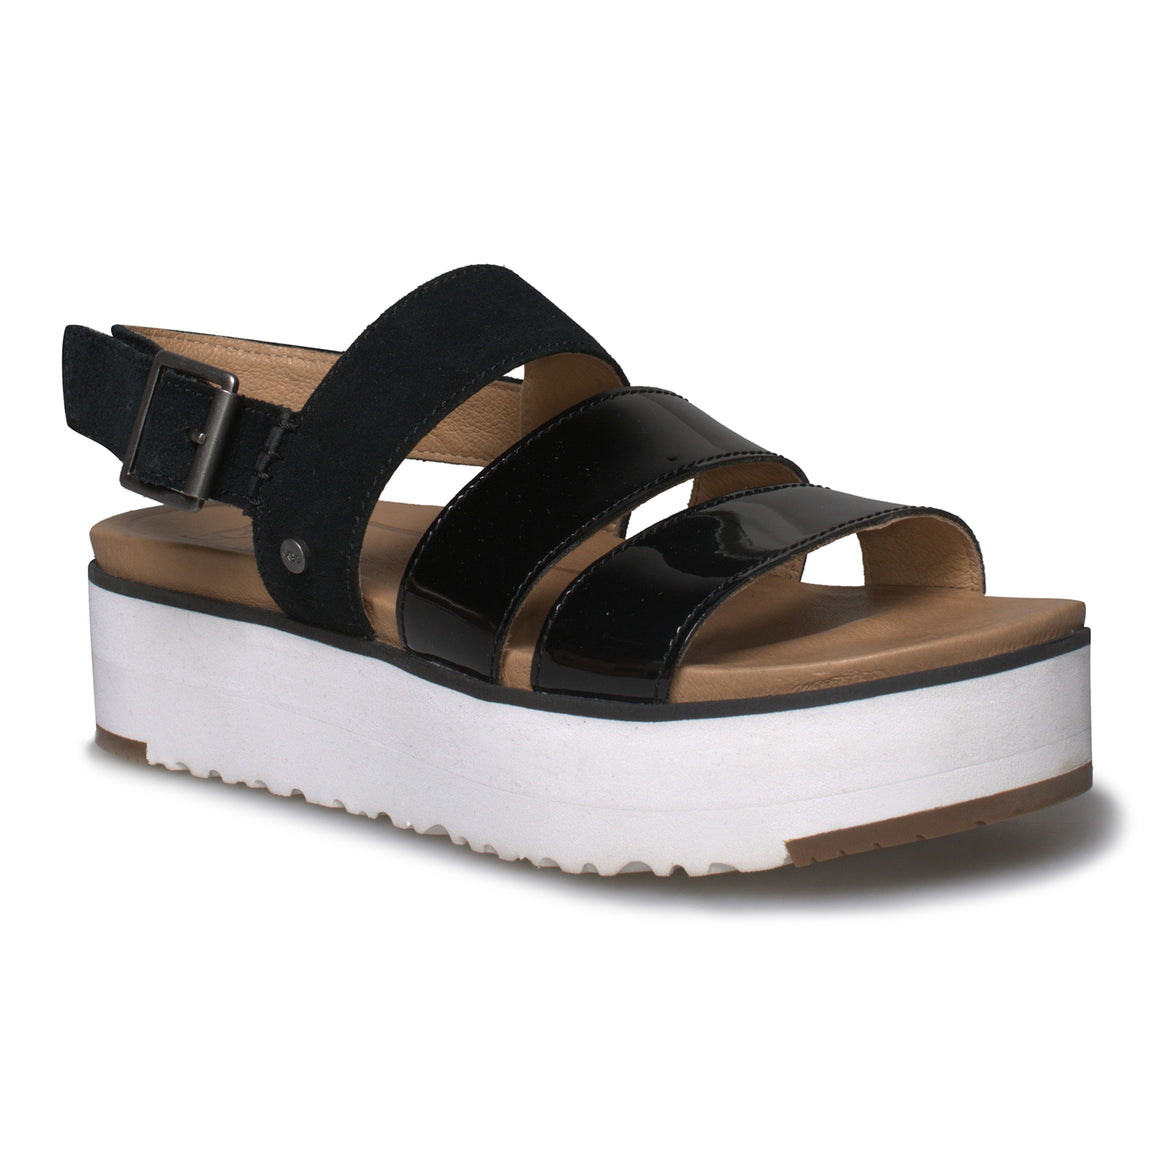 UGG Braelynn Black Sandals - Women's